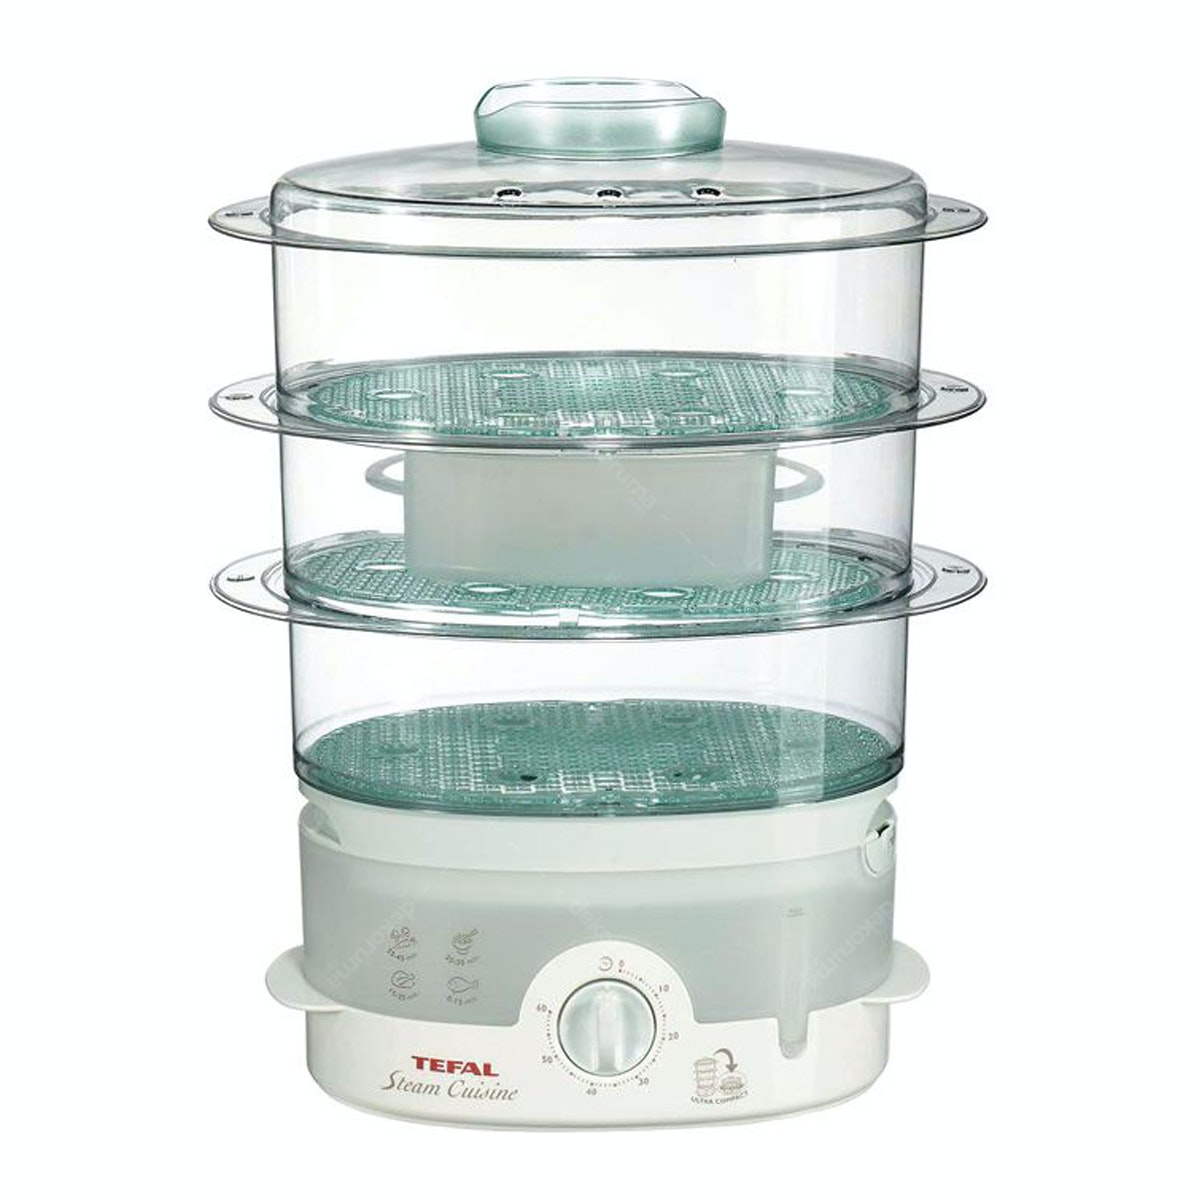 Tefal Steamer Ultra Compact VC1002